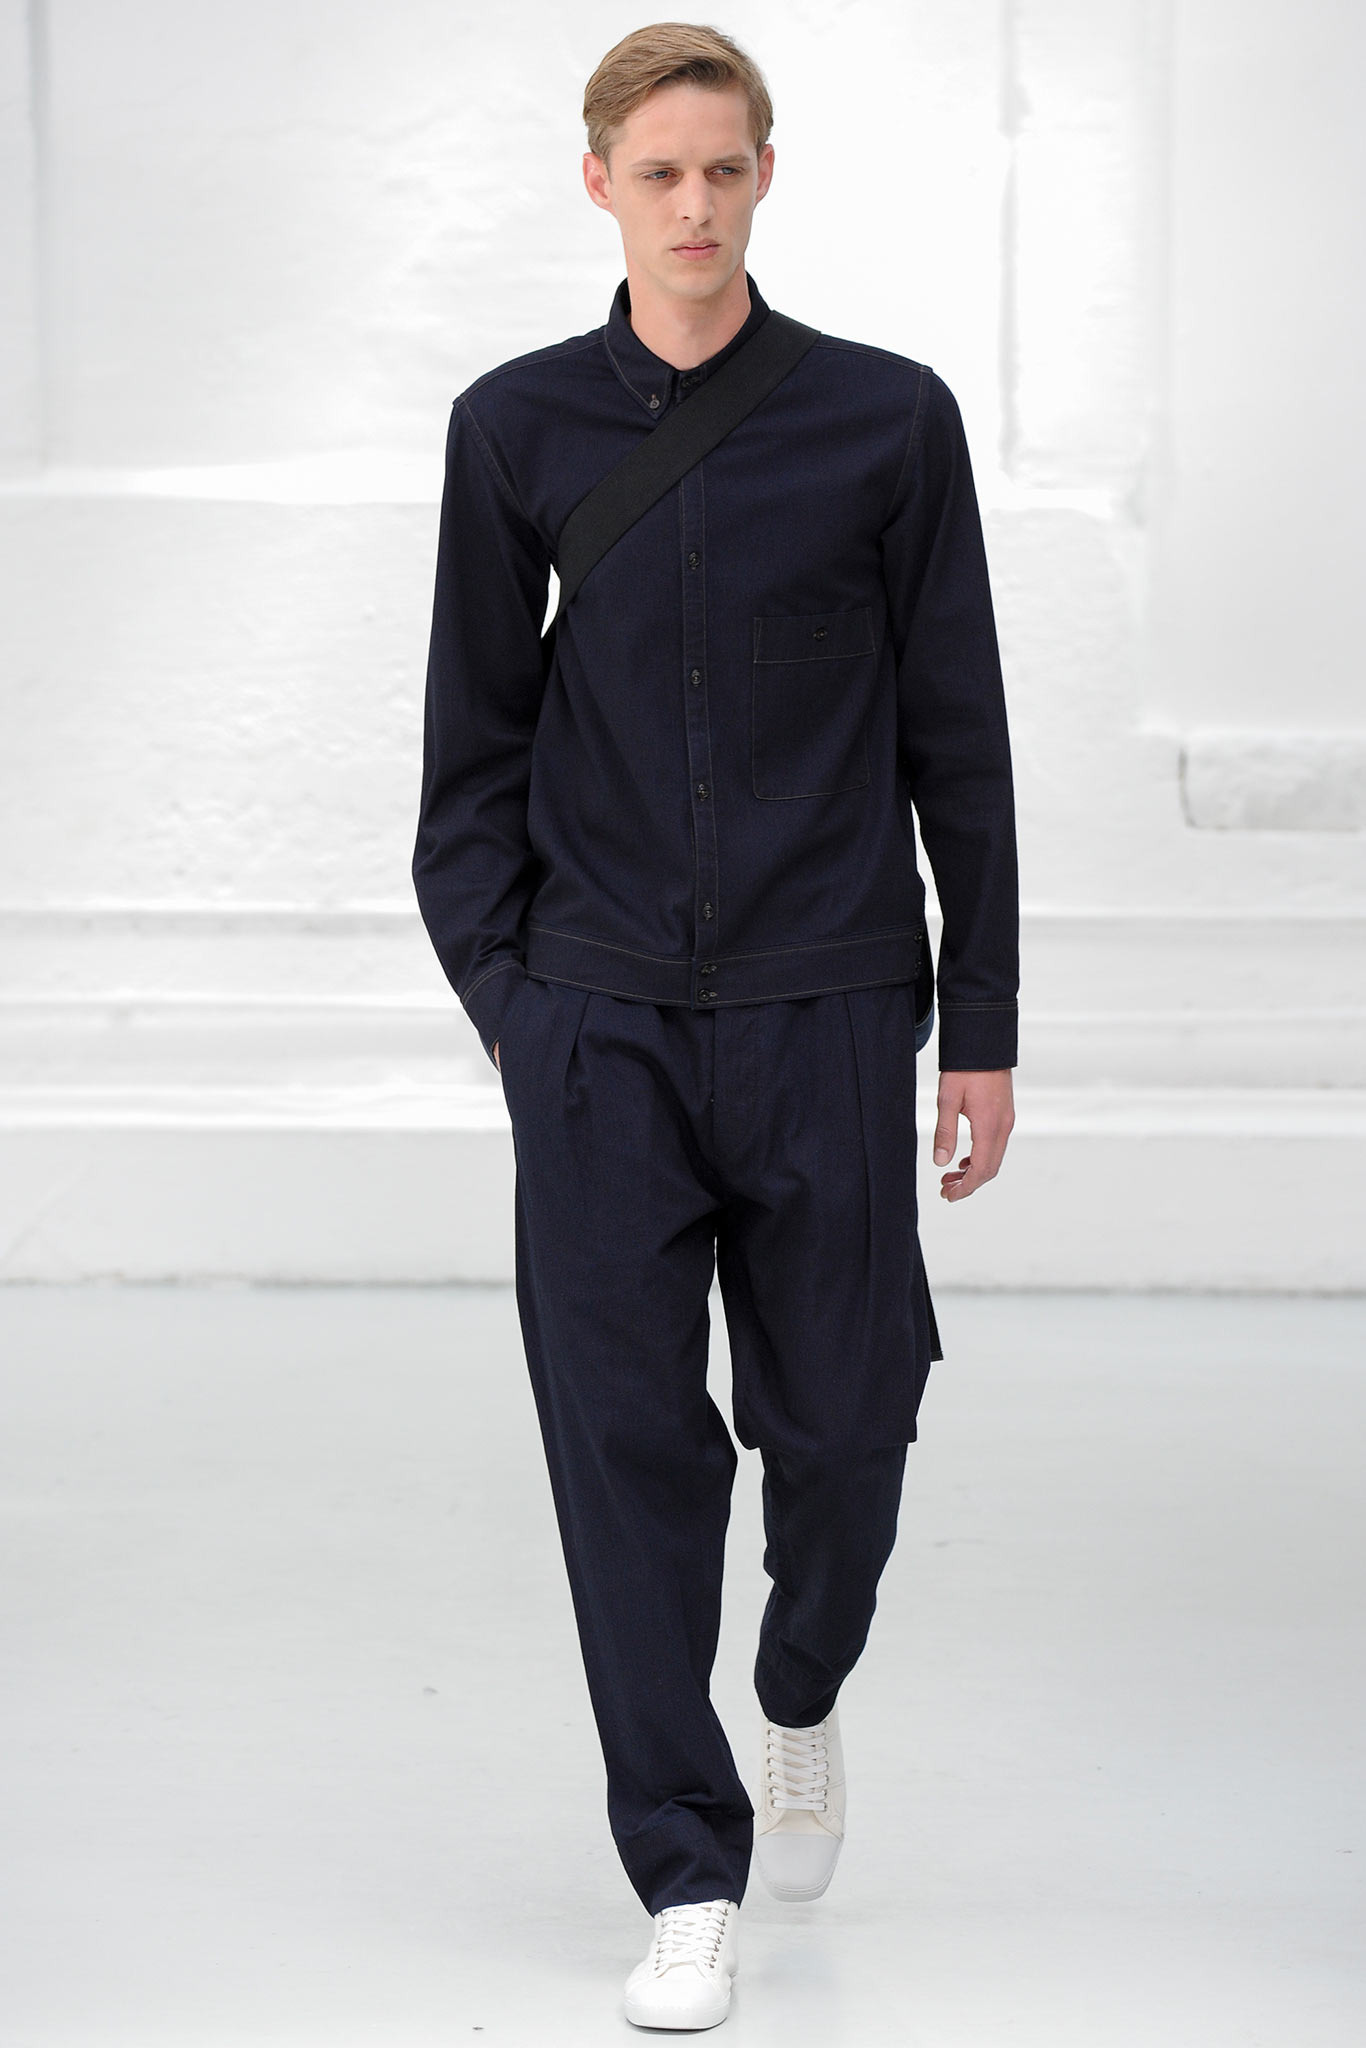 christope lemaire 2015 spring summer collection